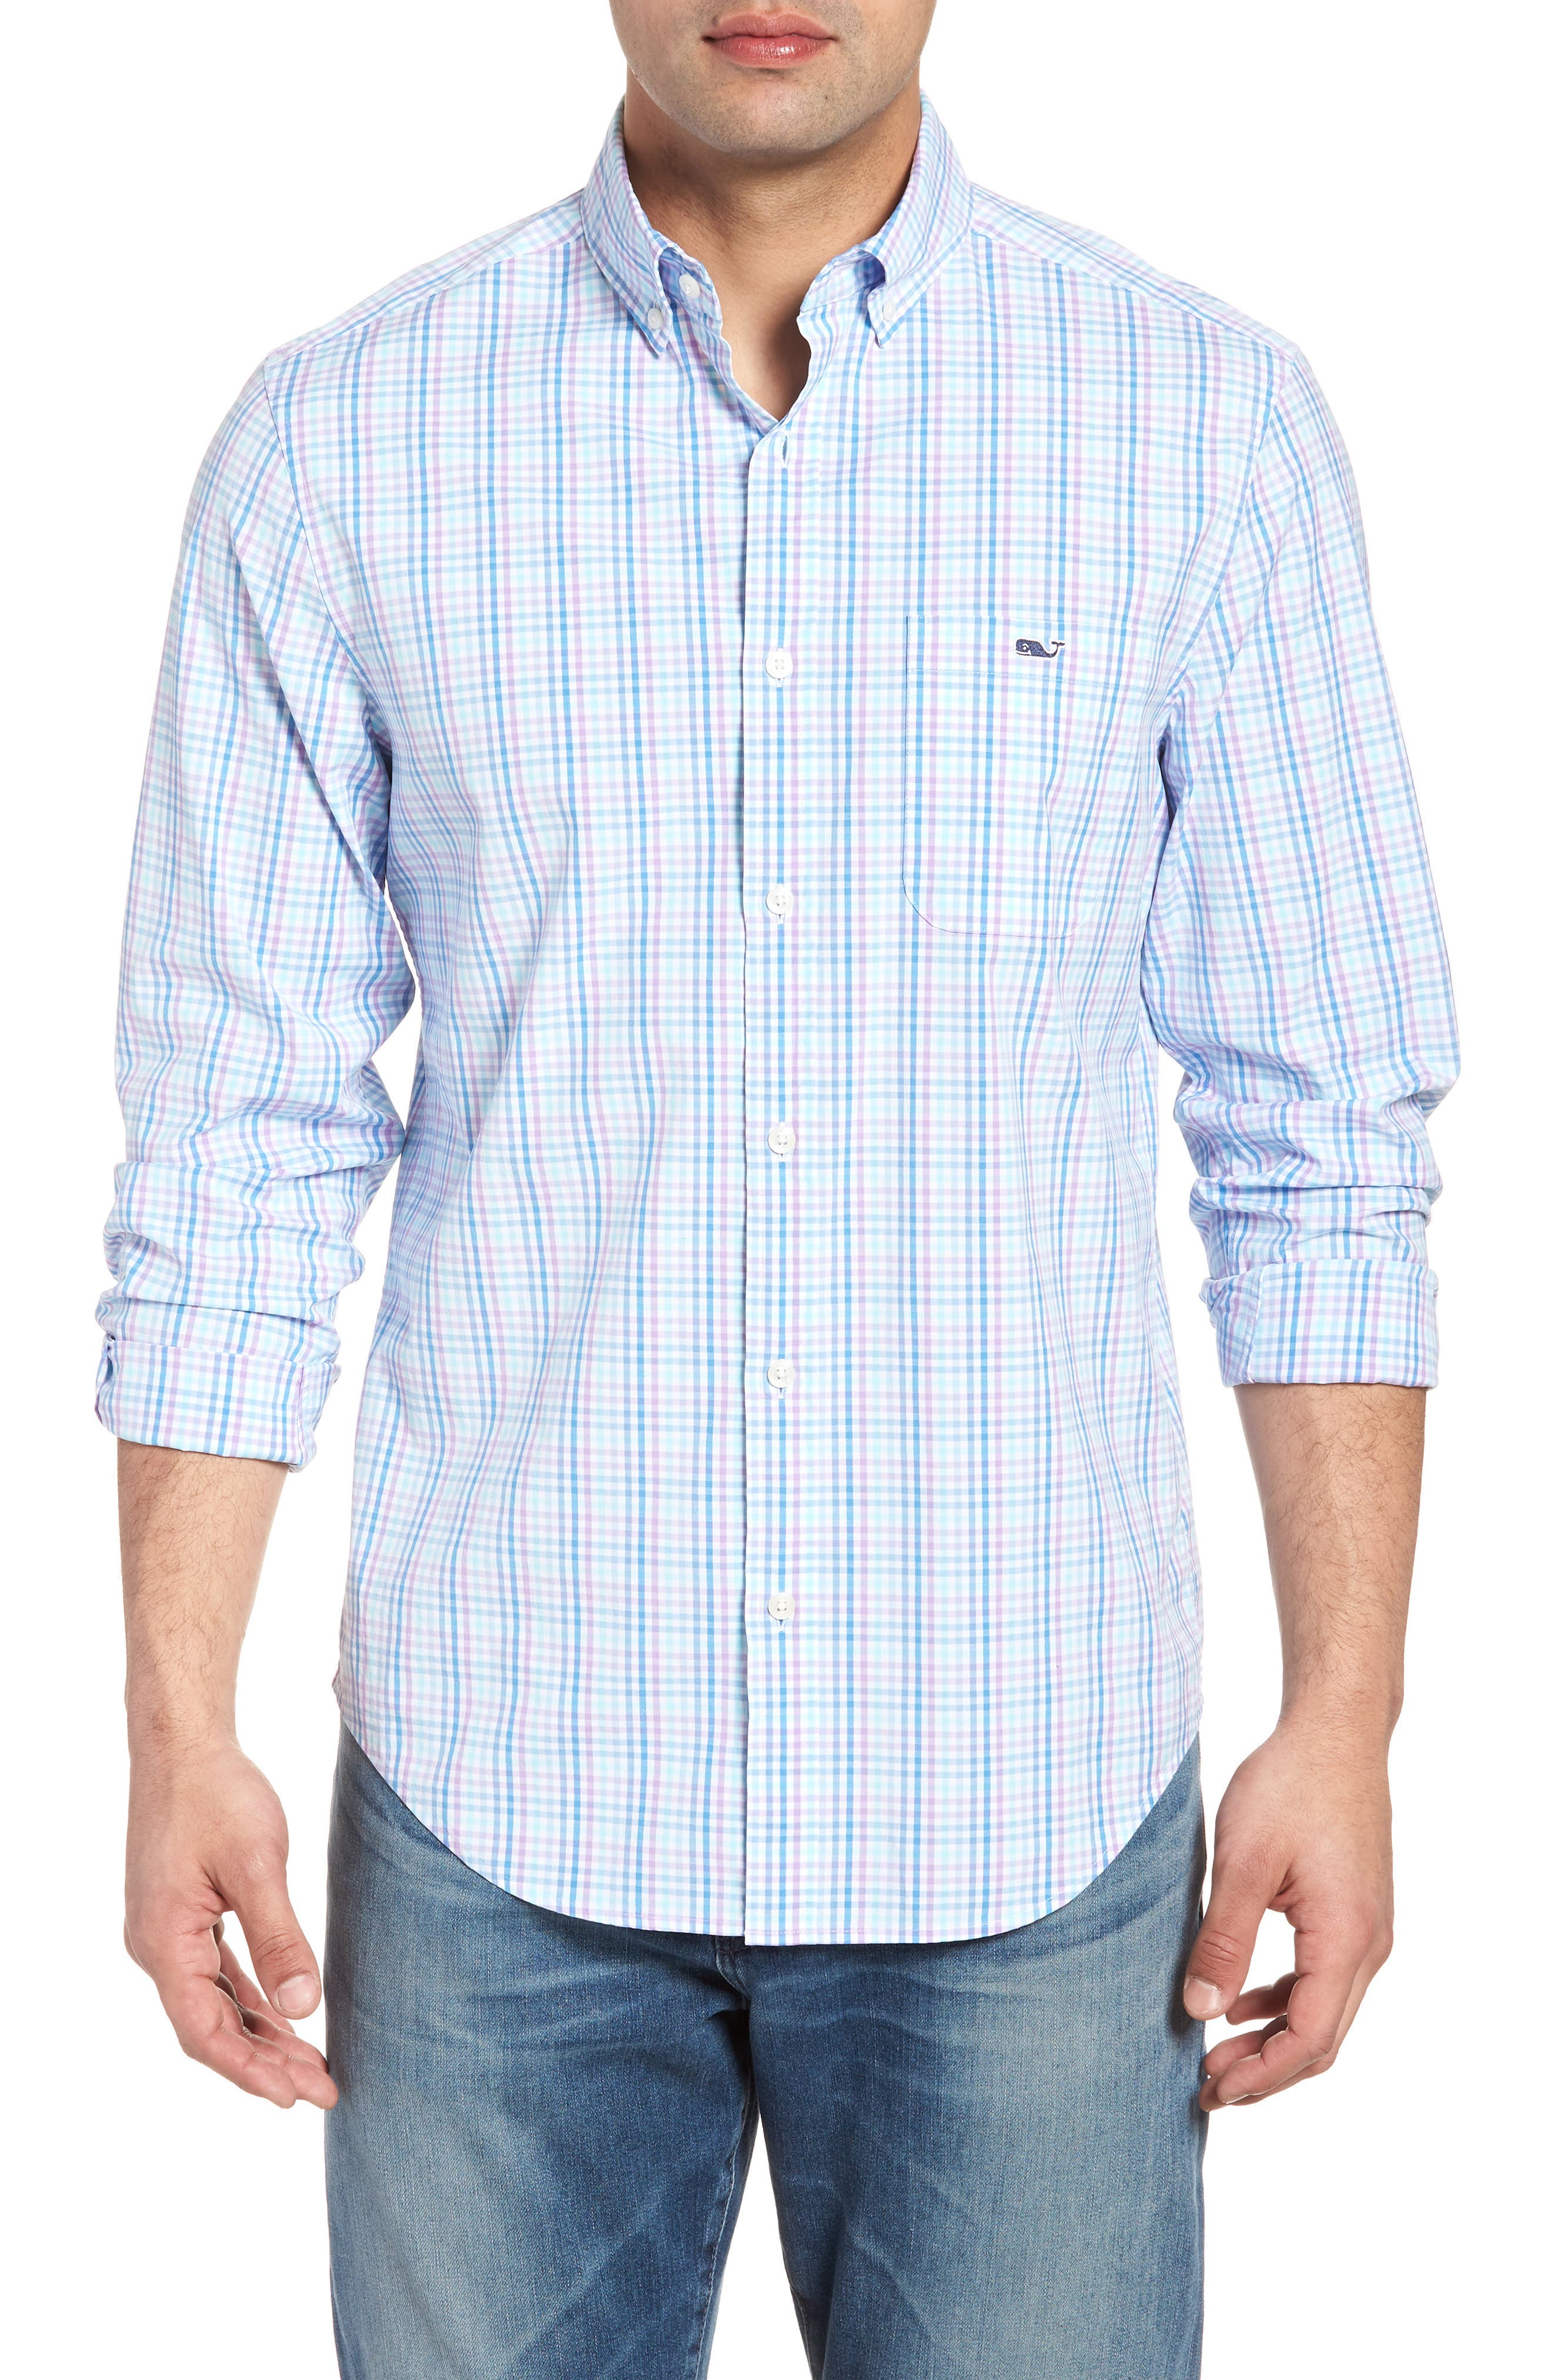 Friendly Island Classic Fit Stretch Check Sport Shirt,                         Main,                         color, 526